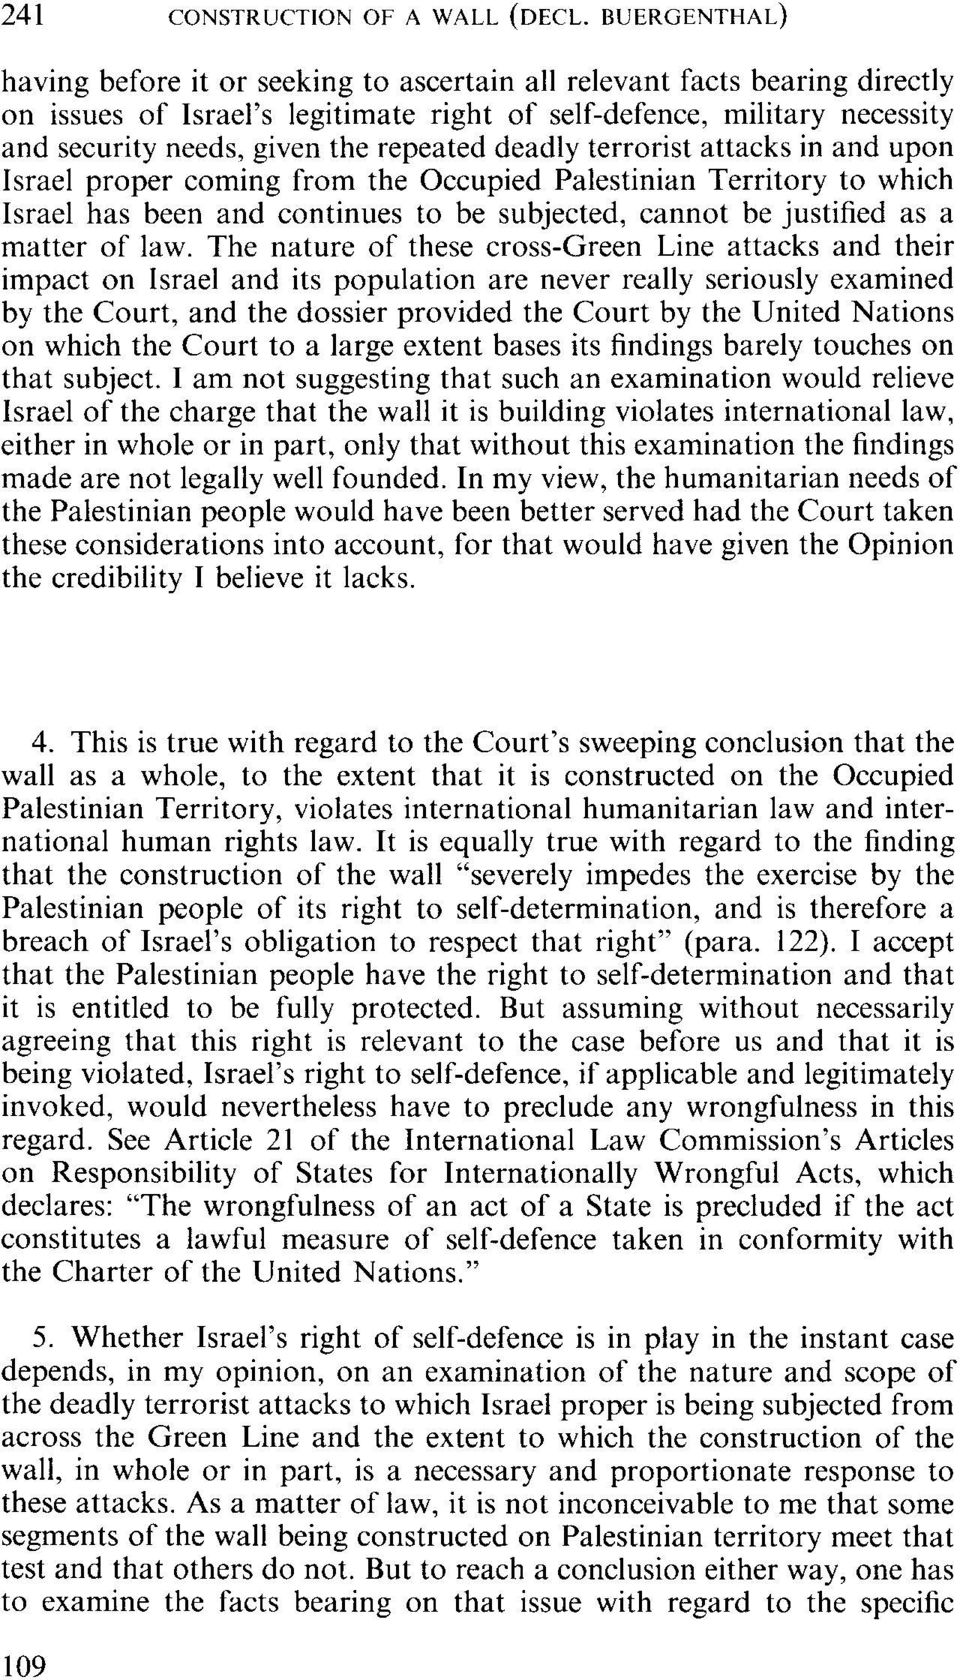 The nature of these cross-green Line attacks and their impact on Israel and its population are never really seriously examined by the Court, and the dossier provided the Court by the United Nations